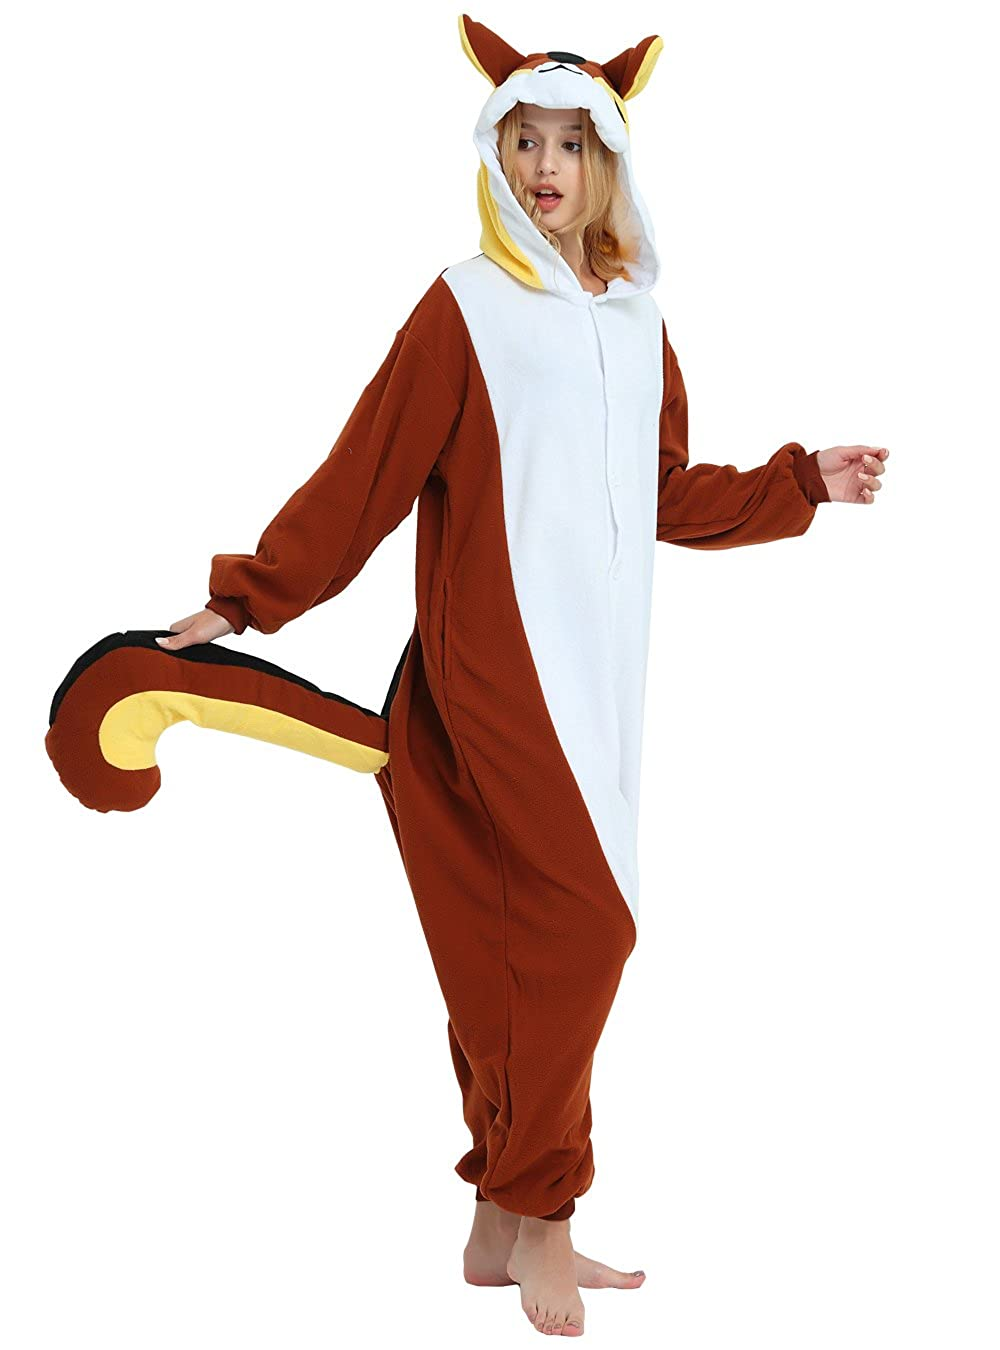 795b97f9d6e9 Amazon.com  Squirrel Onesie for Adult and Teenagers. Halloween Animal  Kigurumi Pajama Costume for Men and Women  Clothing